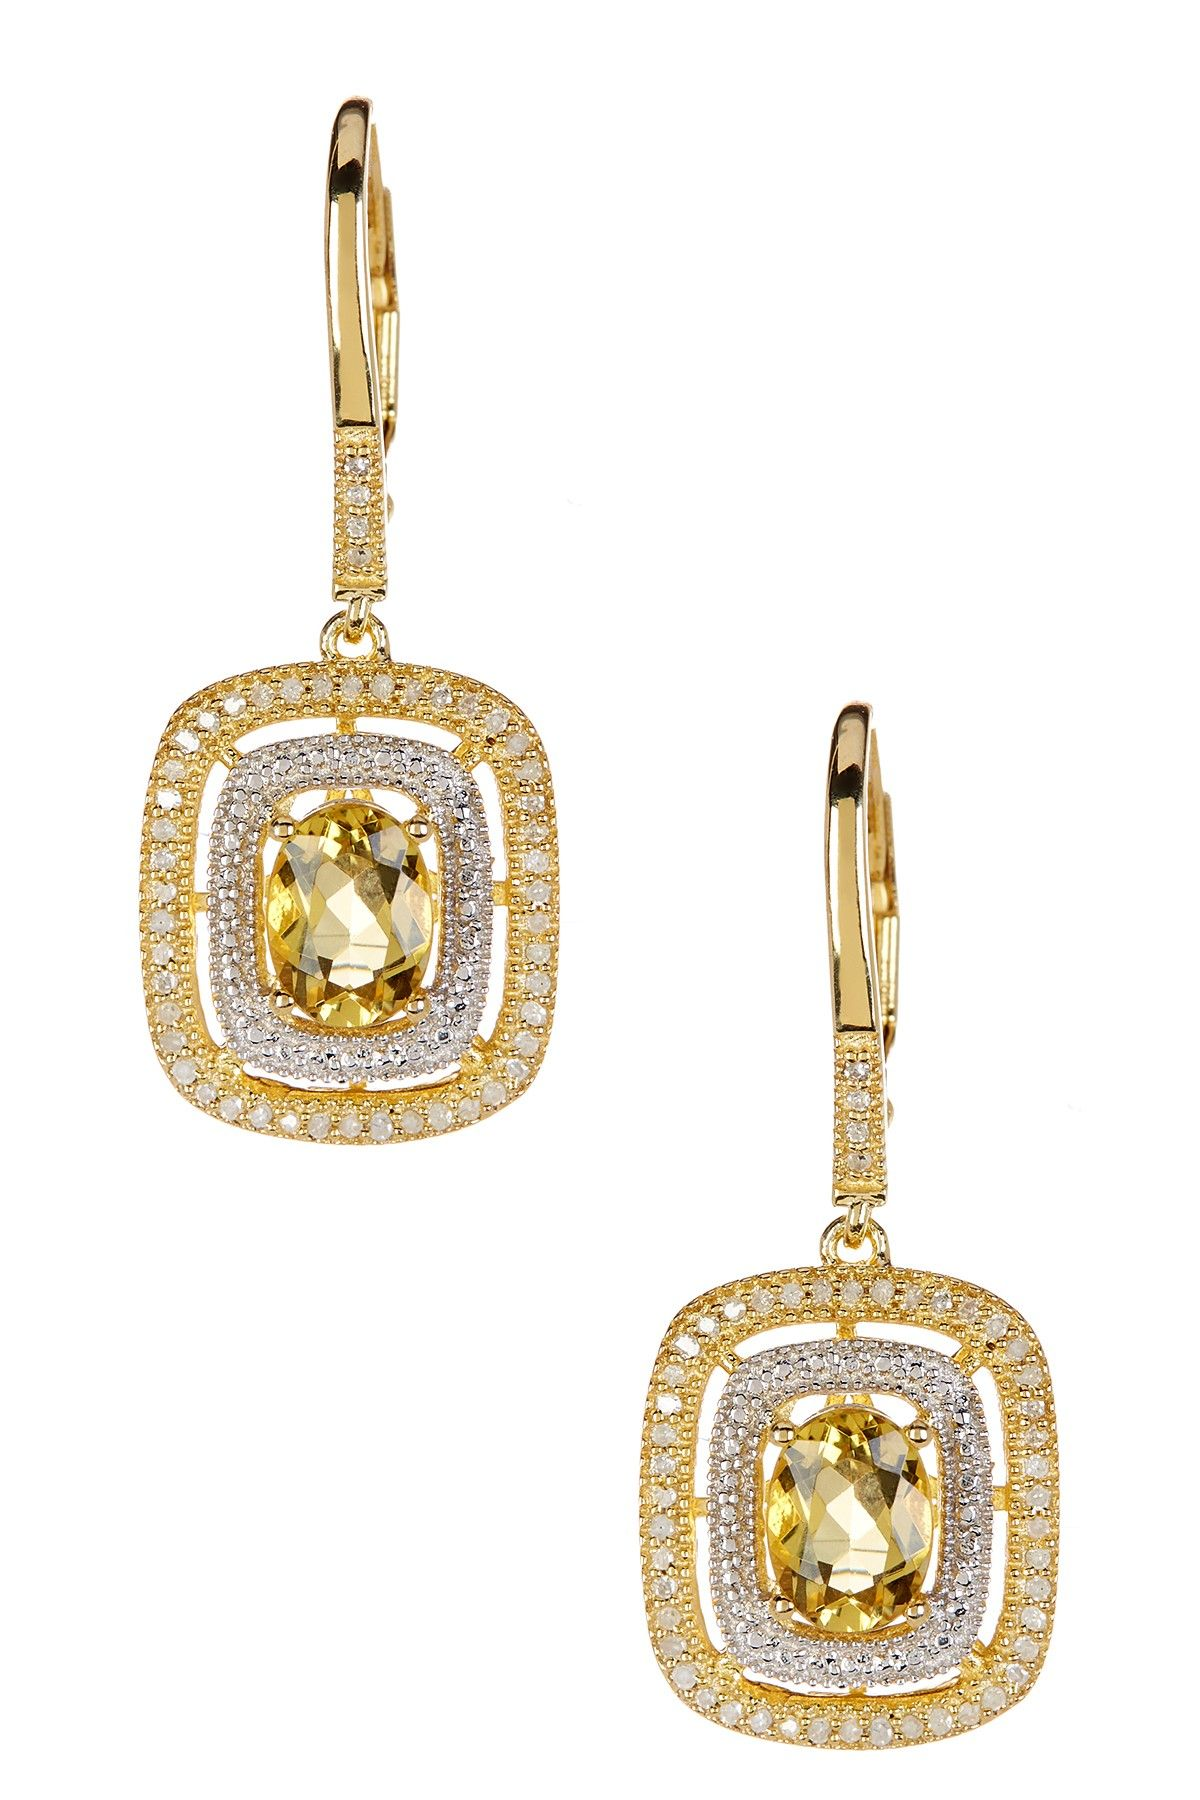 Two-Tone Yellow Beryl & White Diamond Dangle Earrings by Savvy Cie on @HauteLook